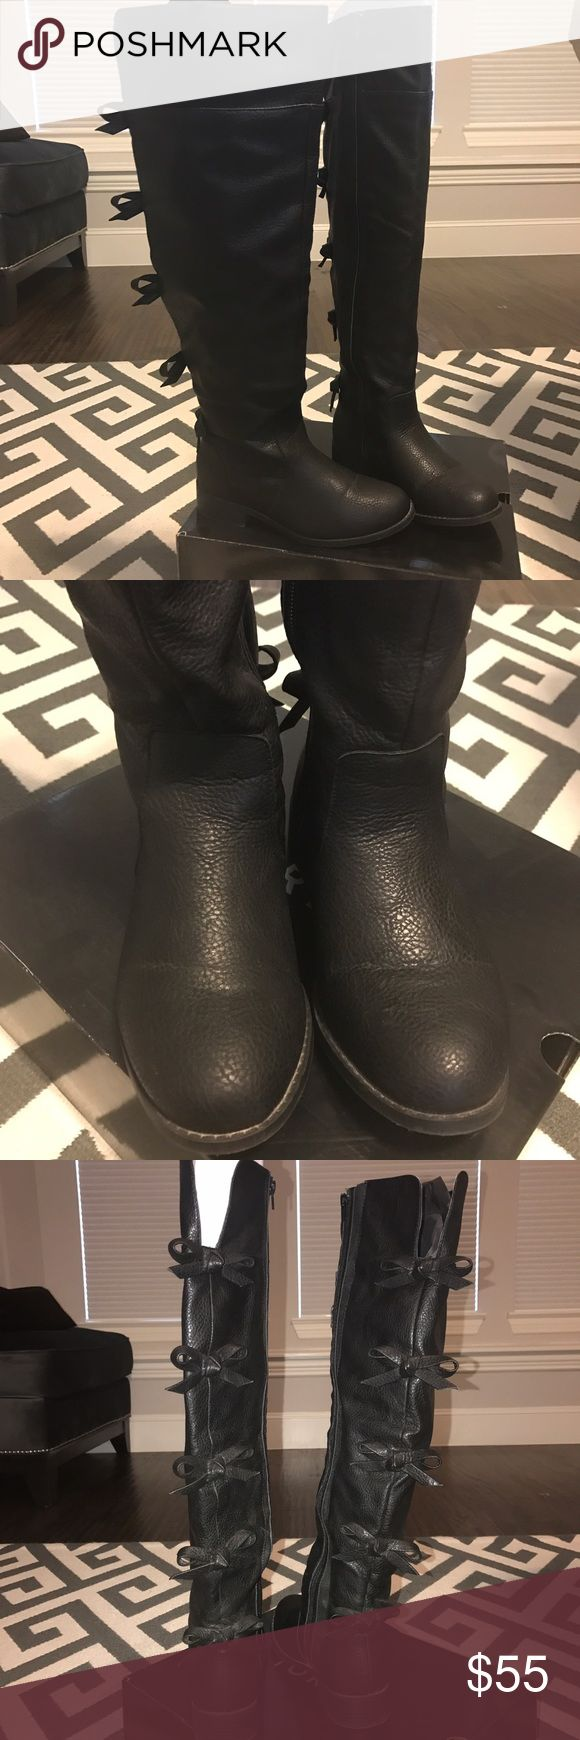 Torrid Knee High Back Bow Boots Great condition! Super cute, wide width, wide calf. I usually wear between 7.5-8 & these fit great. torrid Shoes Over the Knee Boots